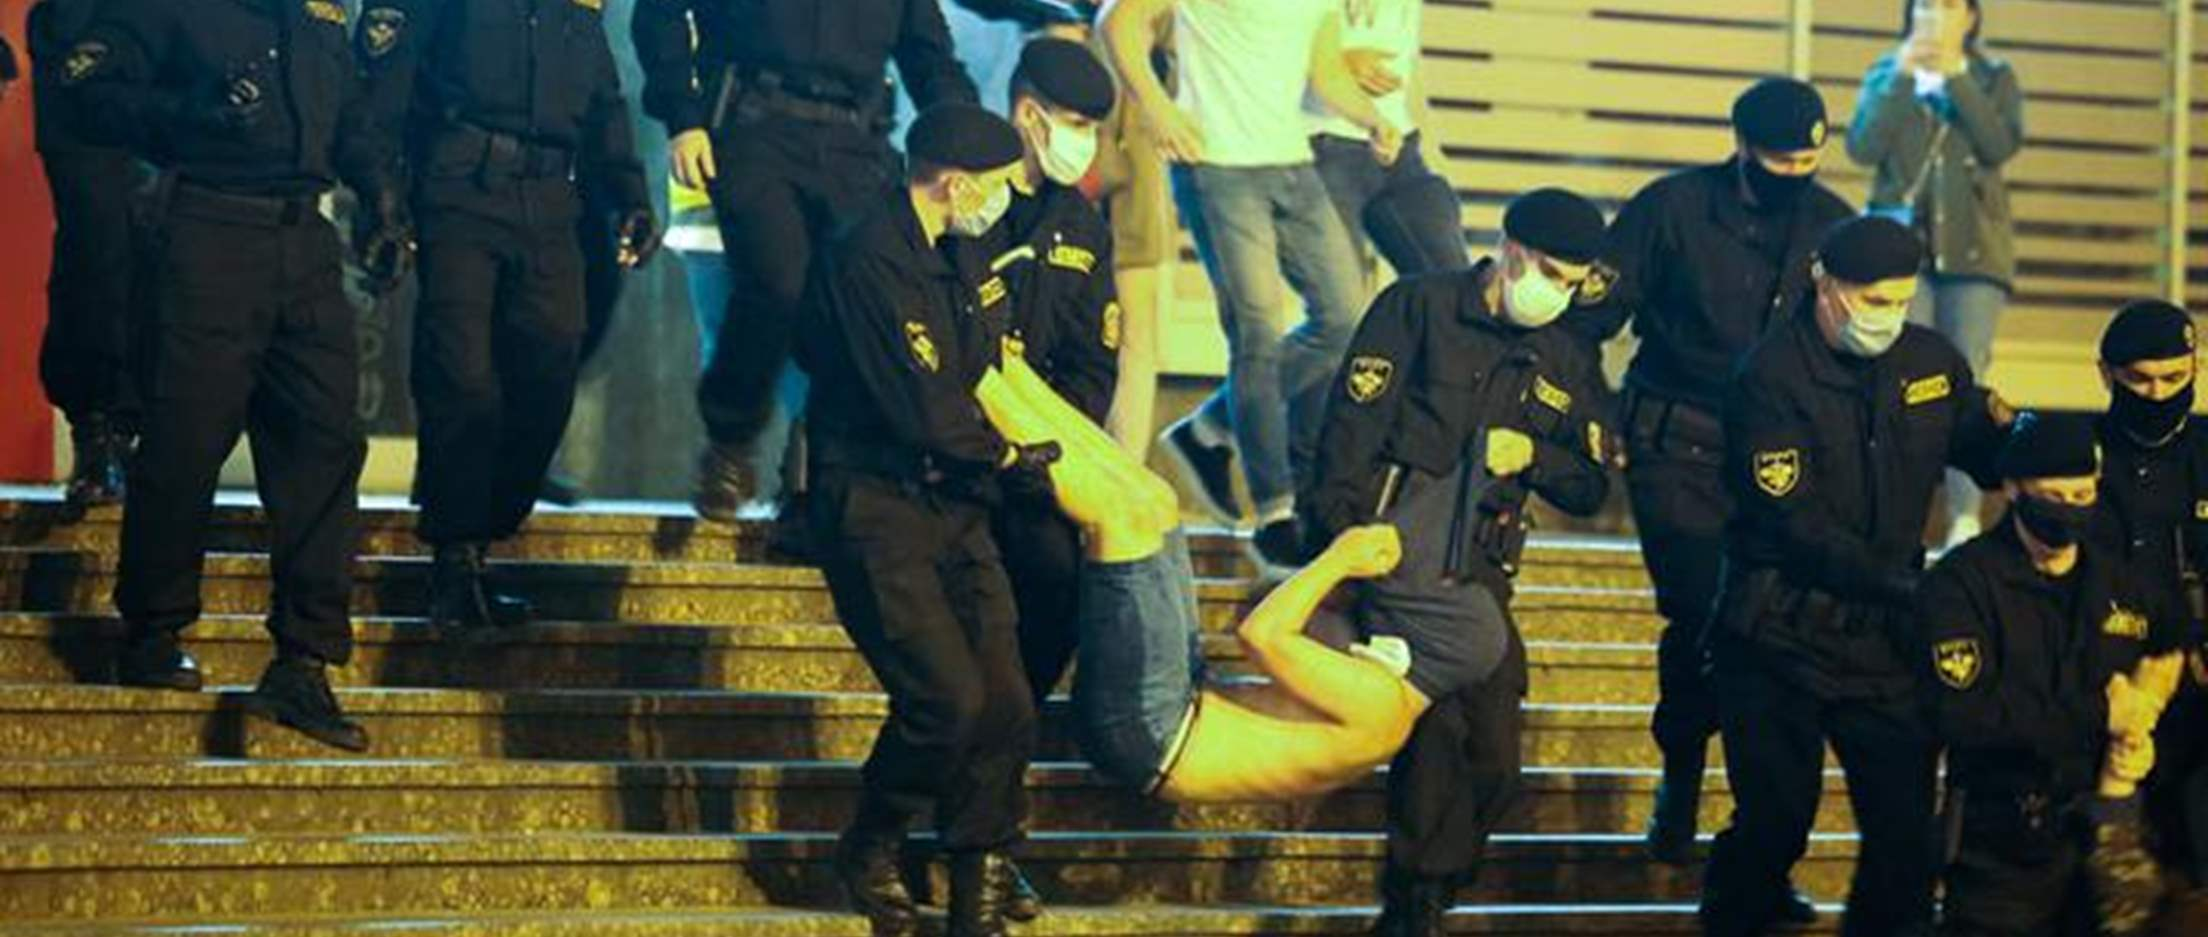 Belarus: Police must be held accountable for violence